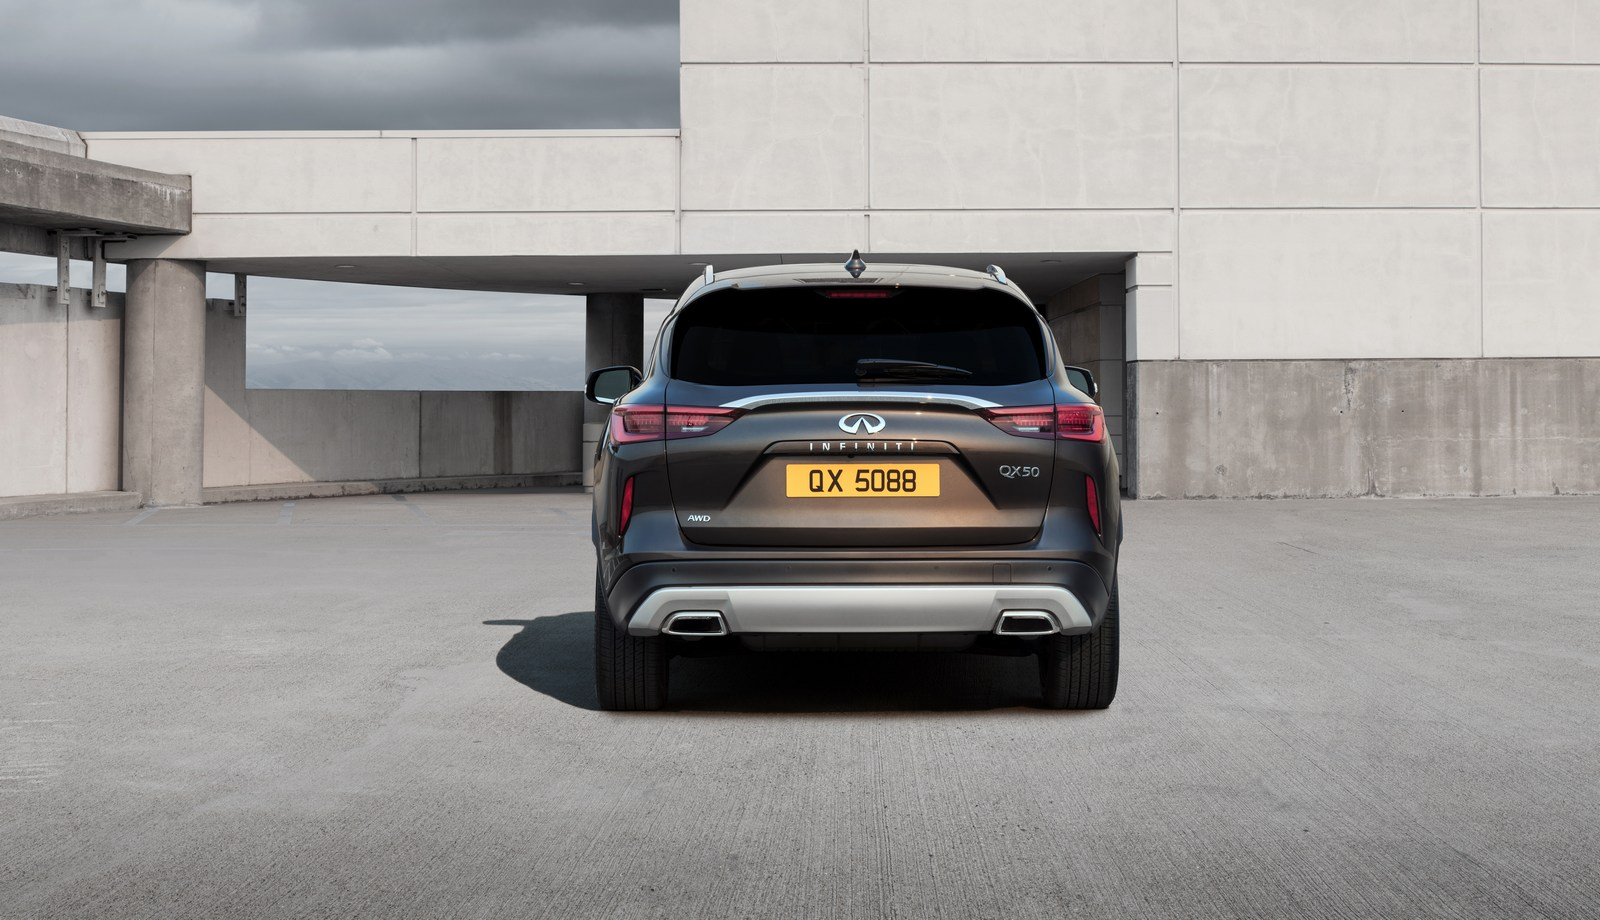 The all-new QX50 is a premium mid-size SUV with world-first technologies, stand-out design and class-leading interior space – on an entirely new platform.